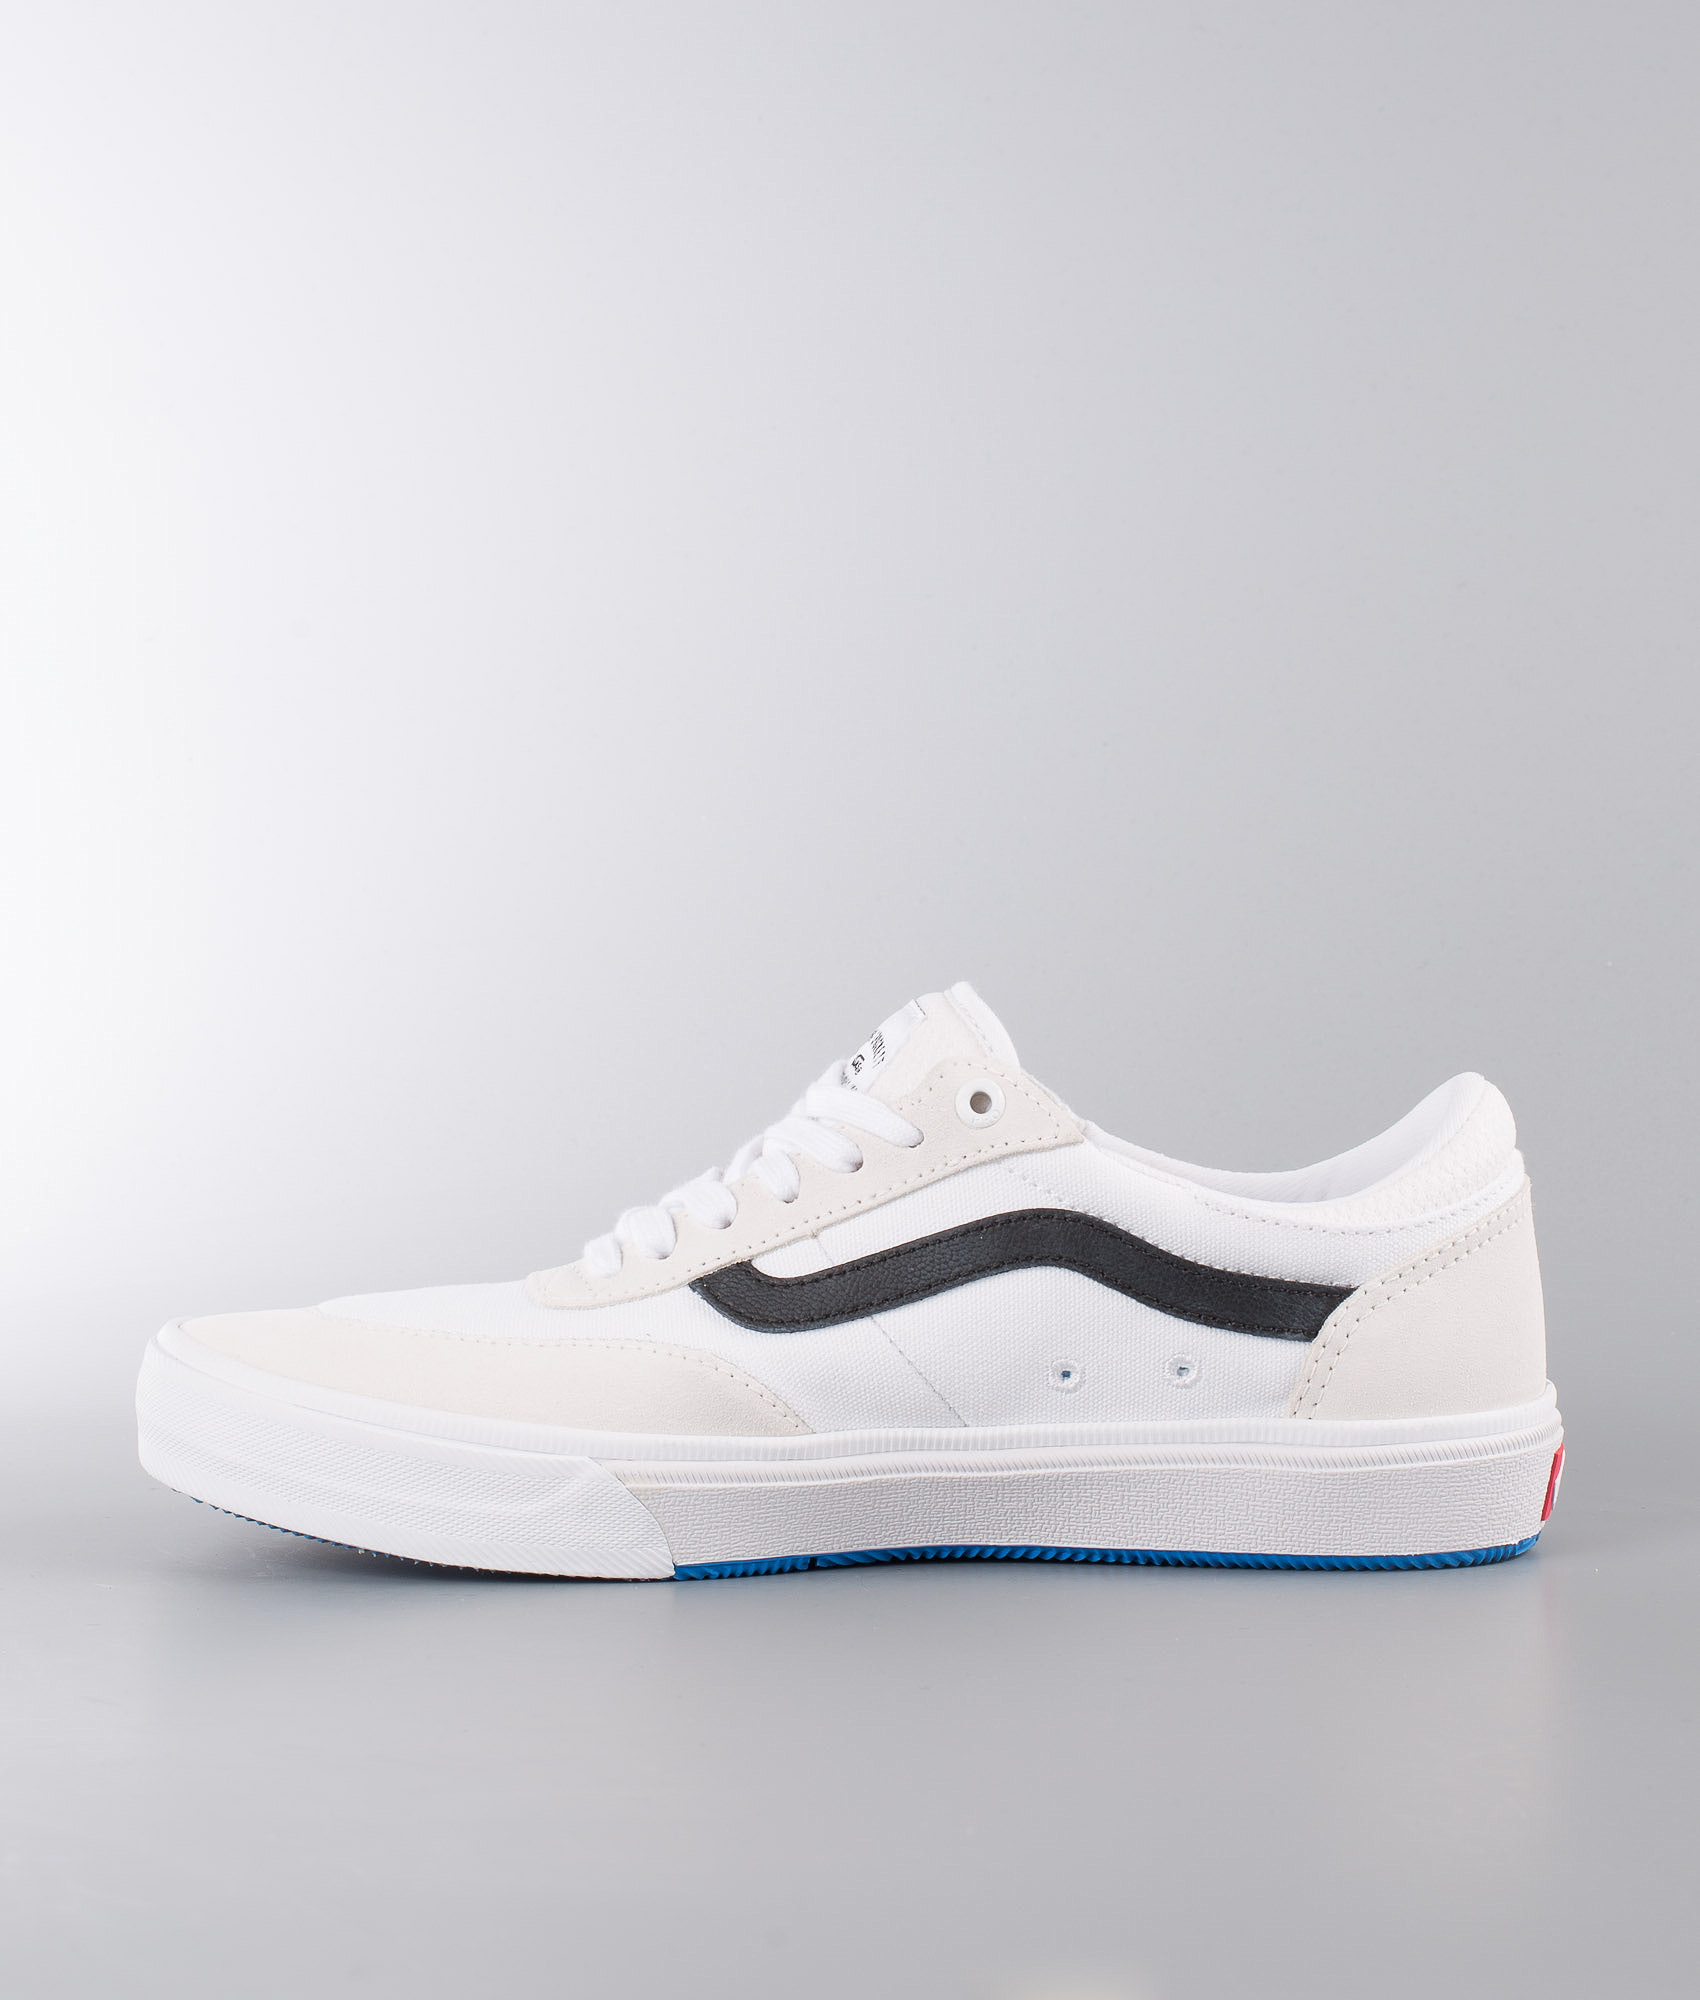 3ffc6de842 Vans Gilbert Crockett 2 Pro Shoes True White Black - Ridestore.com